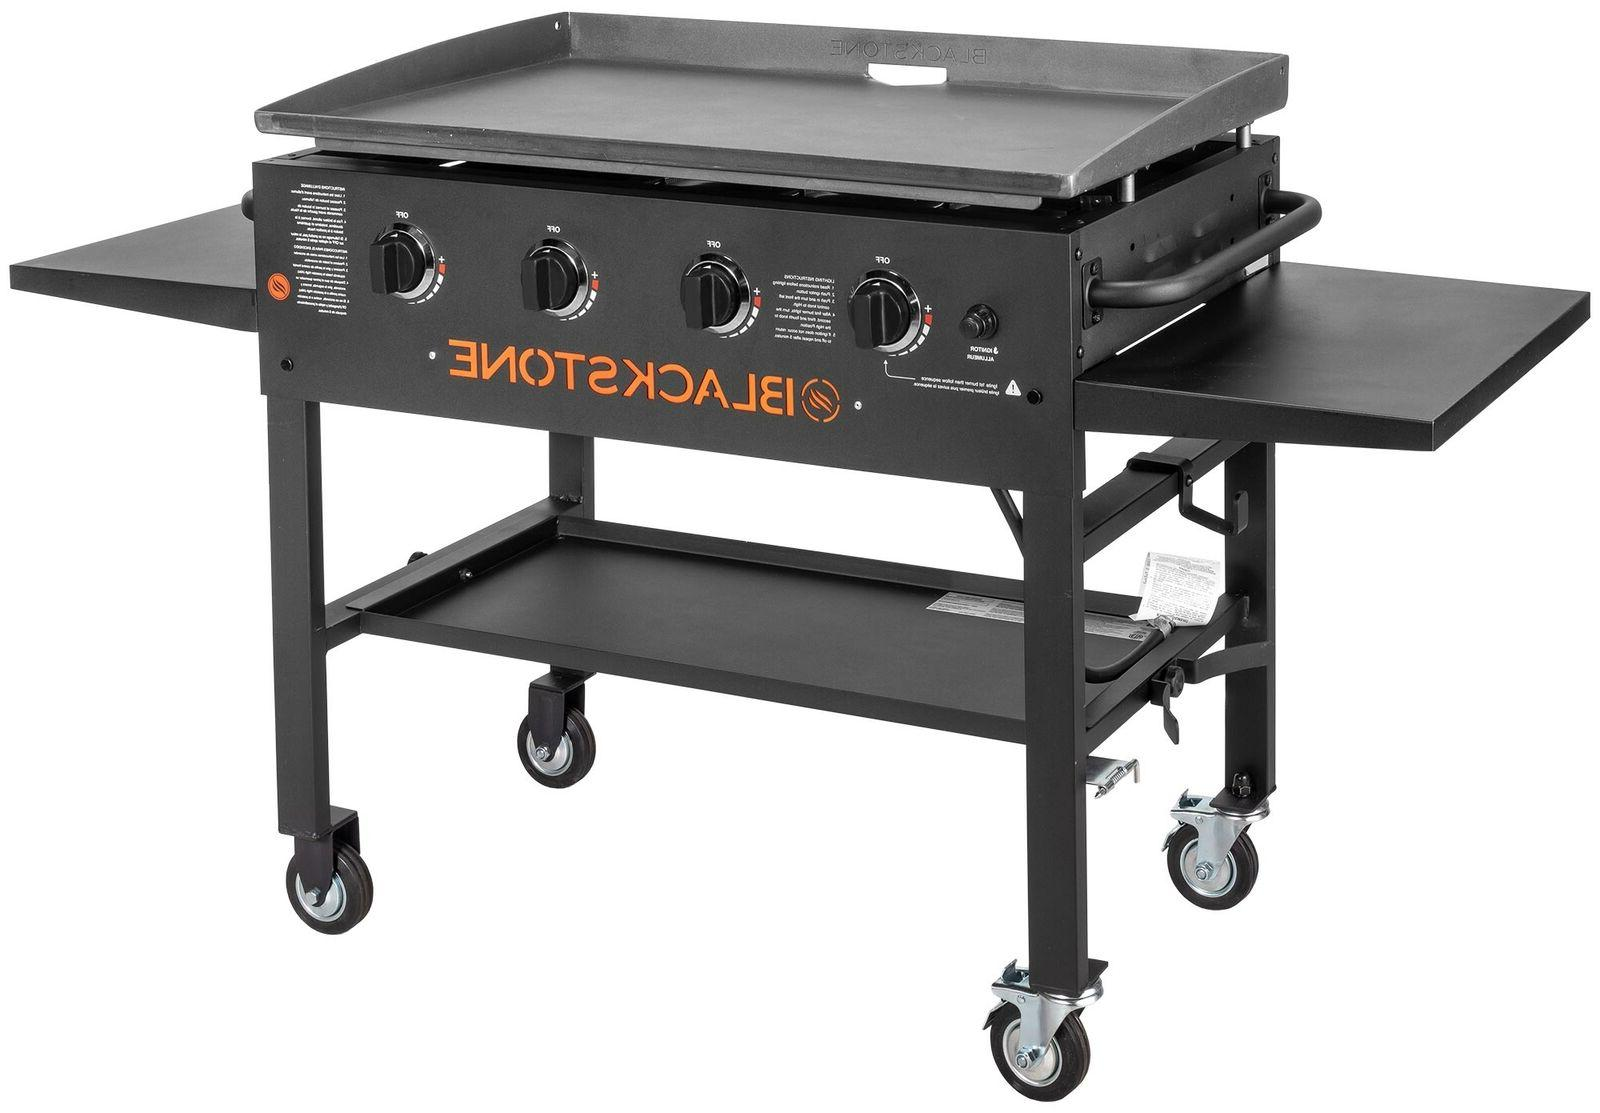 Blackstone 36 Cooking Backyard Propane Gas Grill